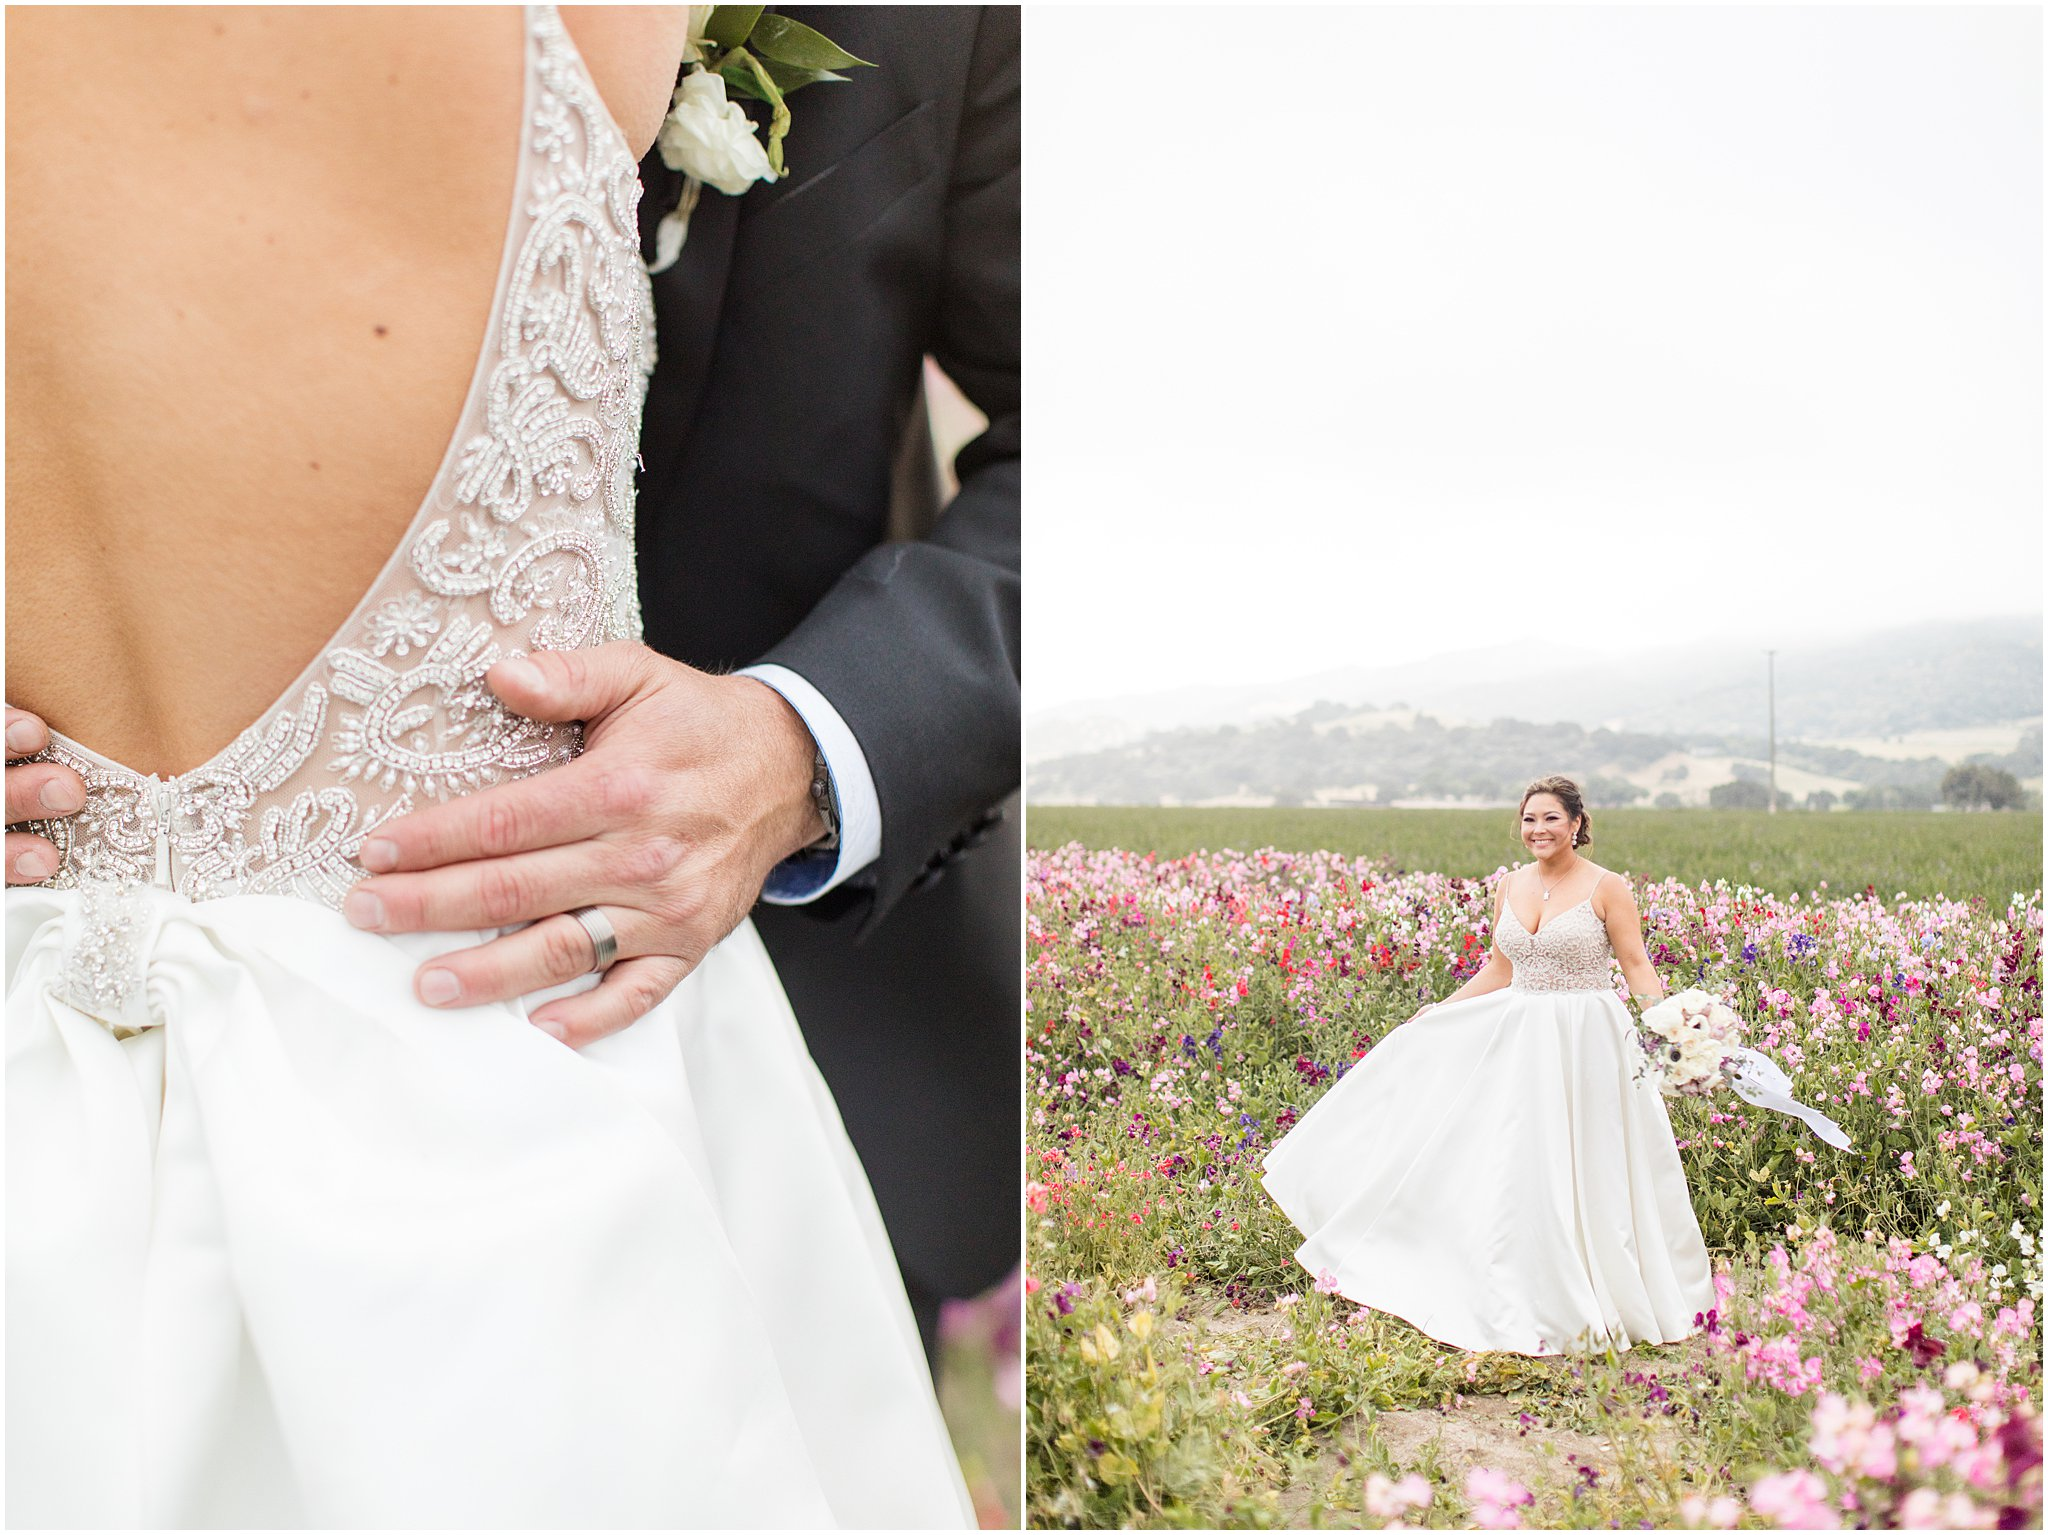 2019 wedding san juan bautista hacienda de leal vineyards bay area wedding photographer_0087.jpg